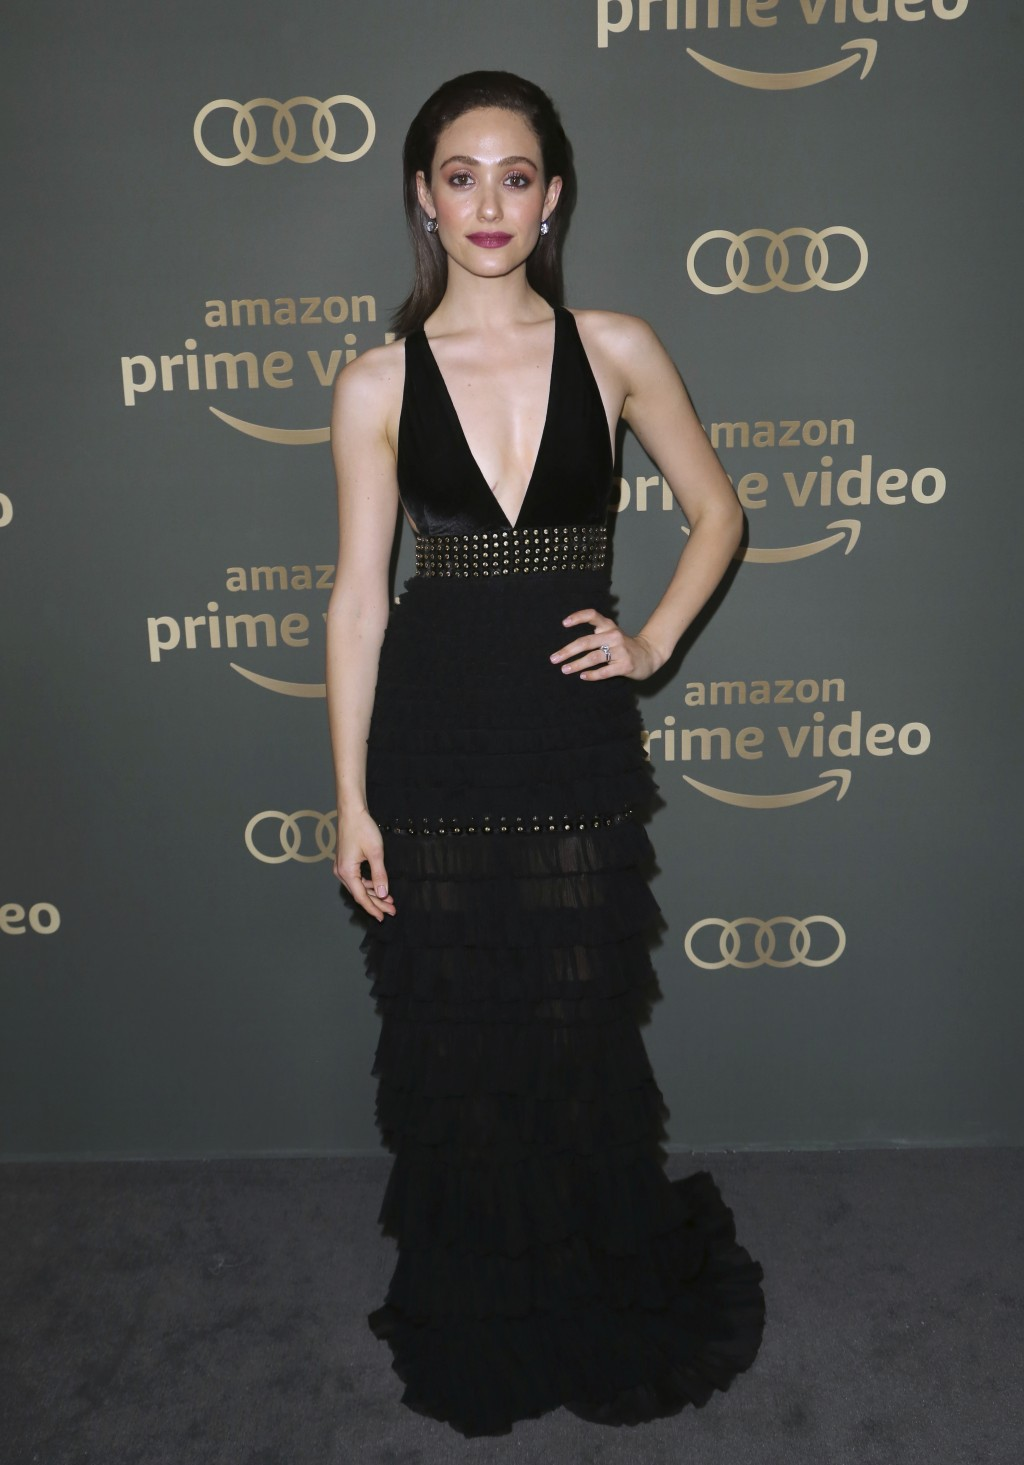 Emmy Rossum arrives at the Amazon Golden Globes afterparty at the Beverly Hilton Hotel on Sunday, Jan. 6, 2019, in Beverly Hills, Calif. (Photo by Wil